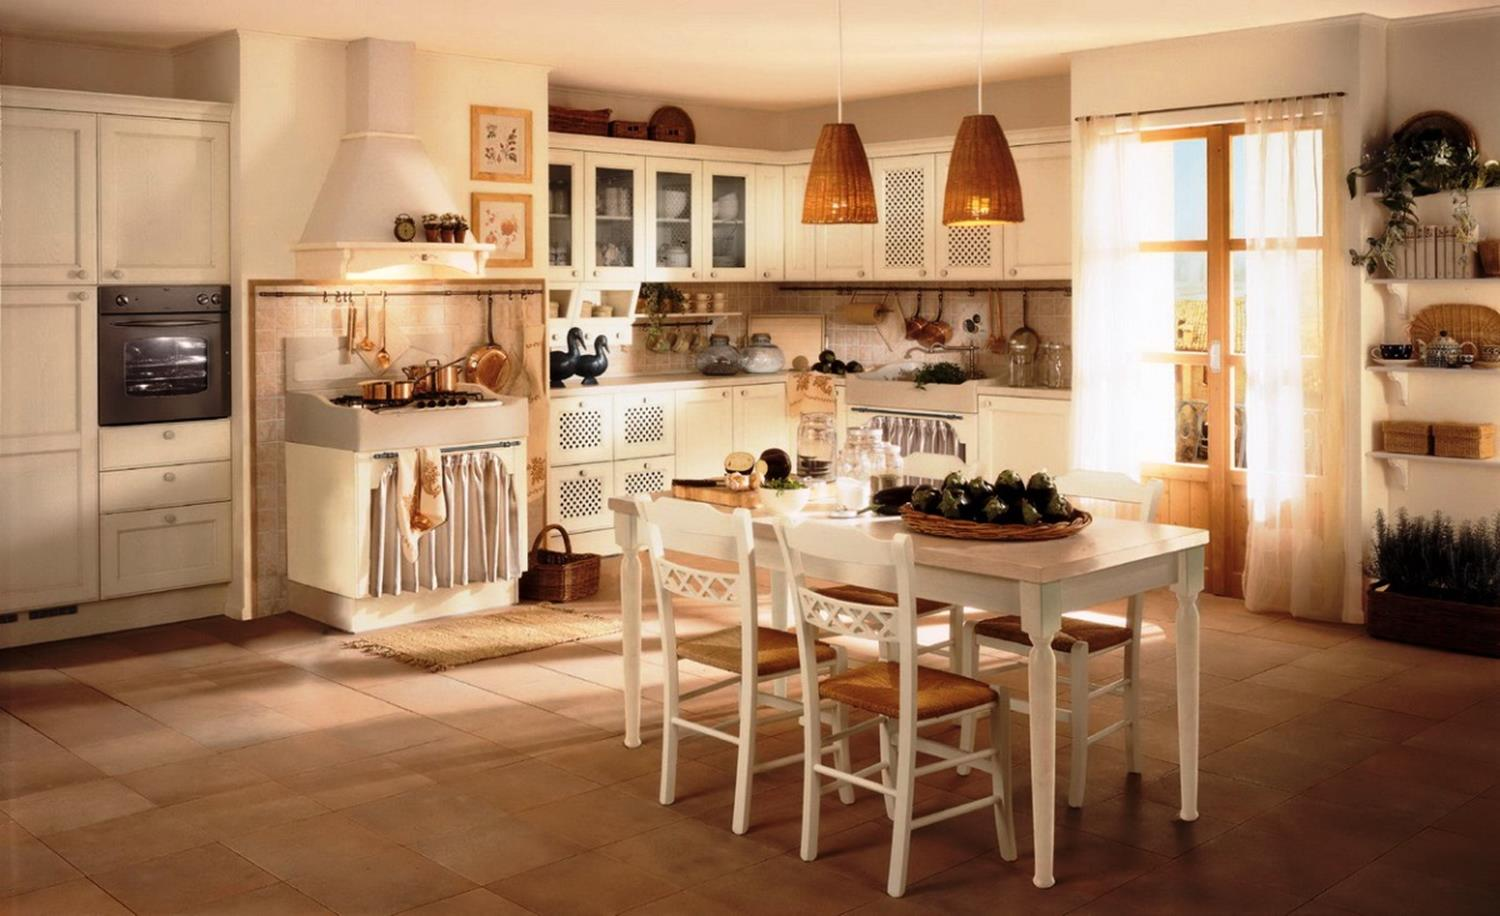 Country Kitchen Accessories and Decor Ideas 6